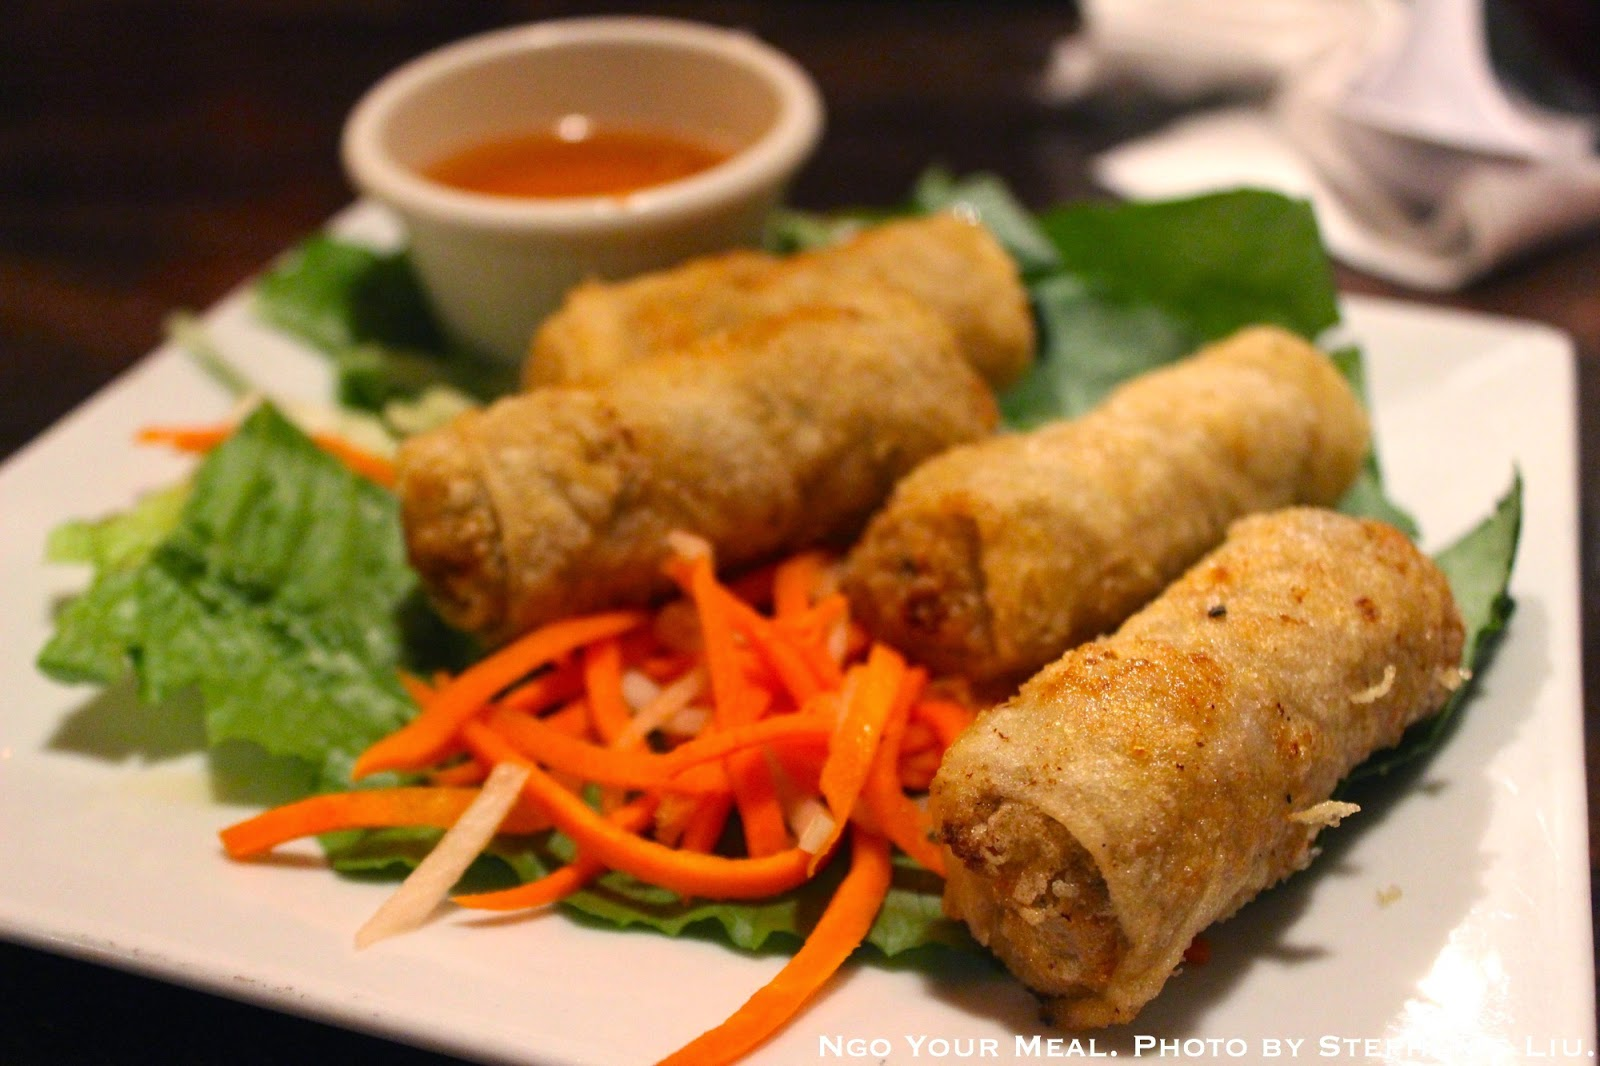 Fried Spring Rolls: Minced Pork, Shrimp, and Glass Noodles wrapped in Rice Paper at Saigon Shack.